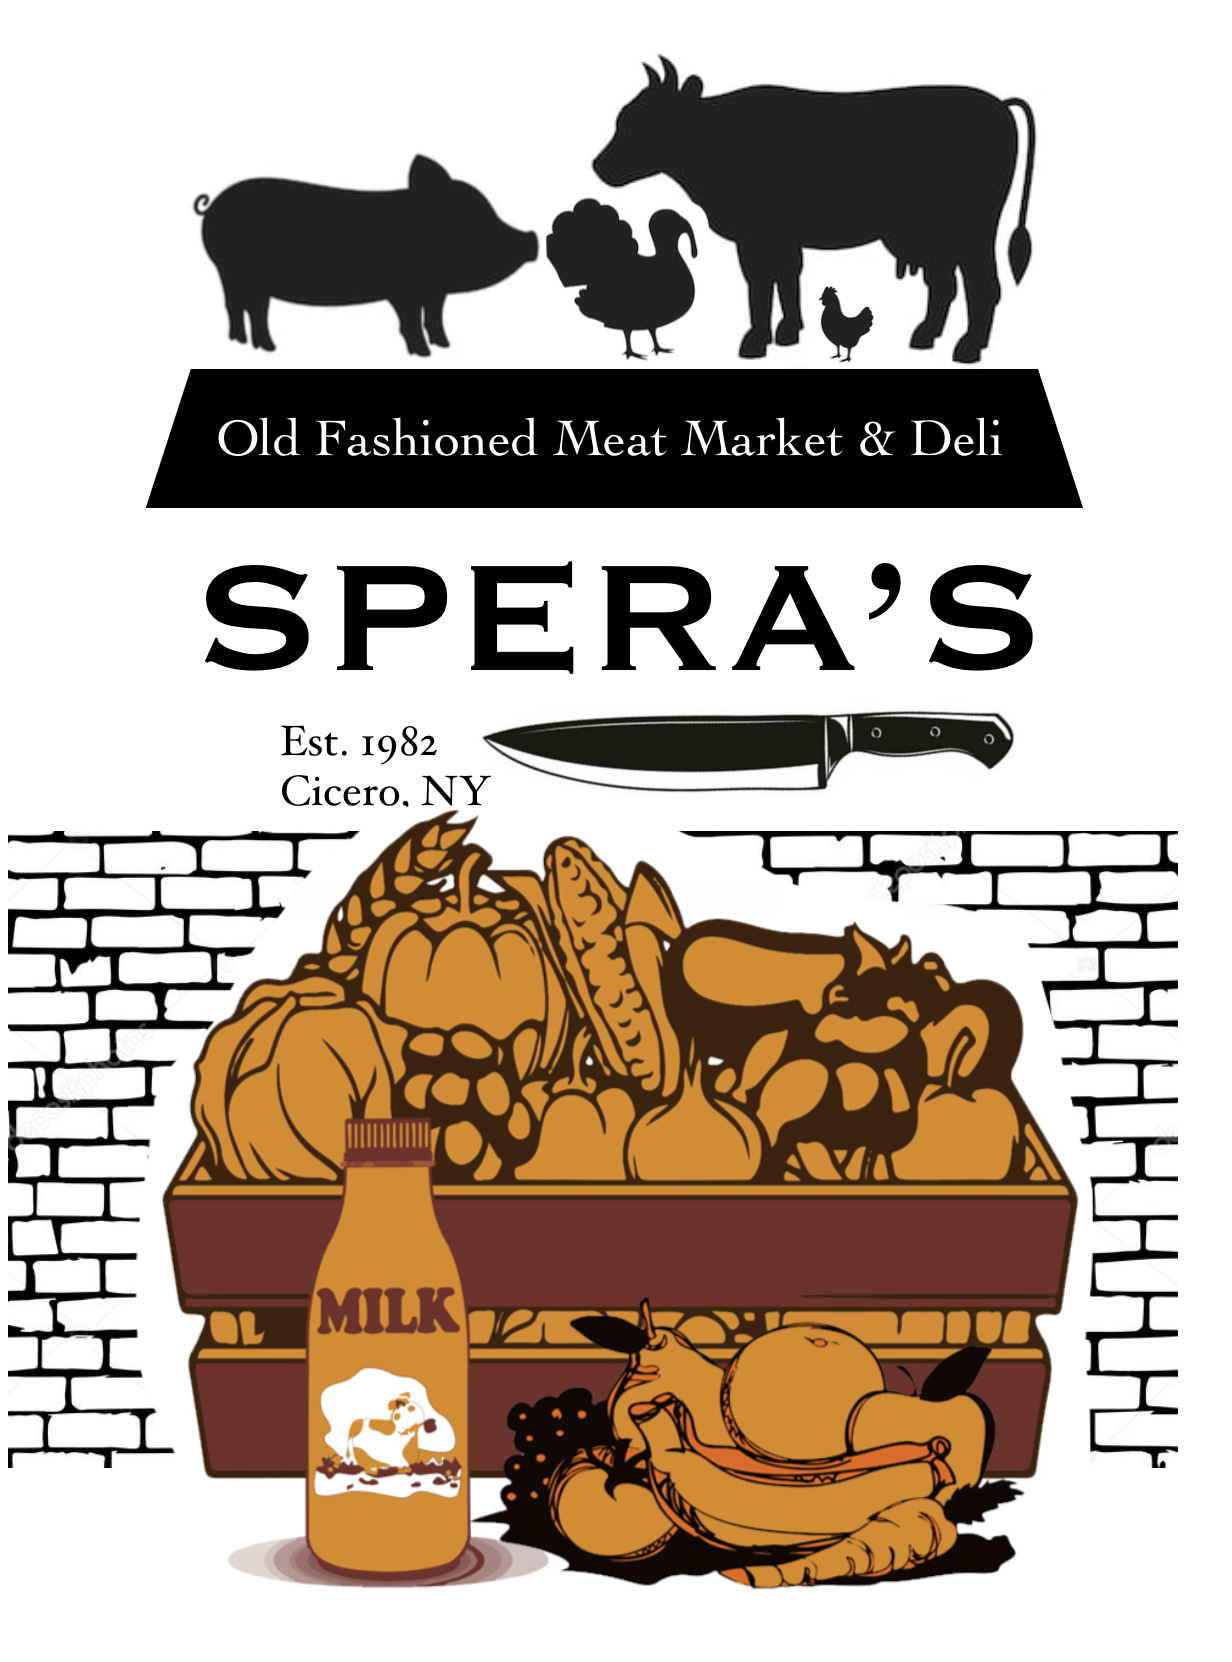 Speras Meat & Deli